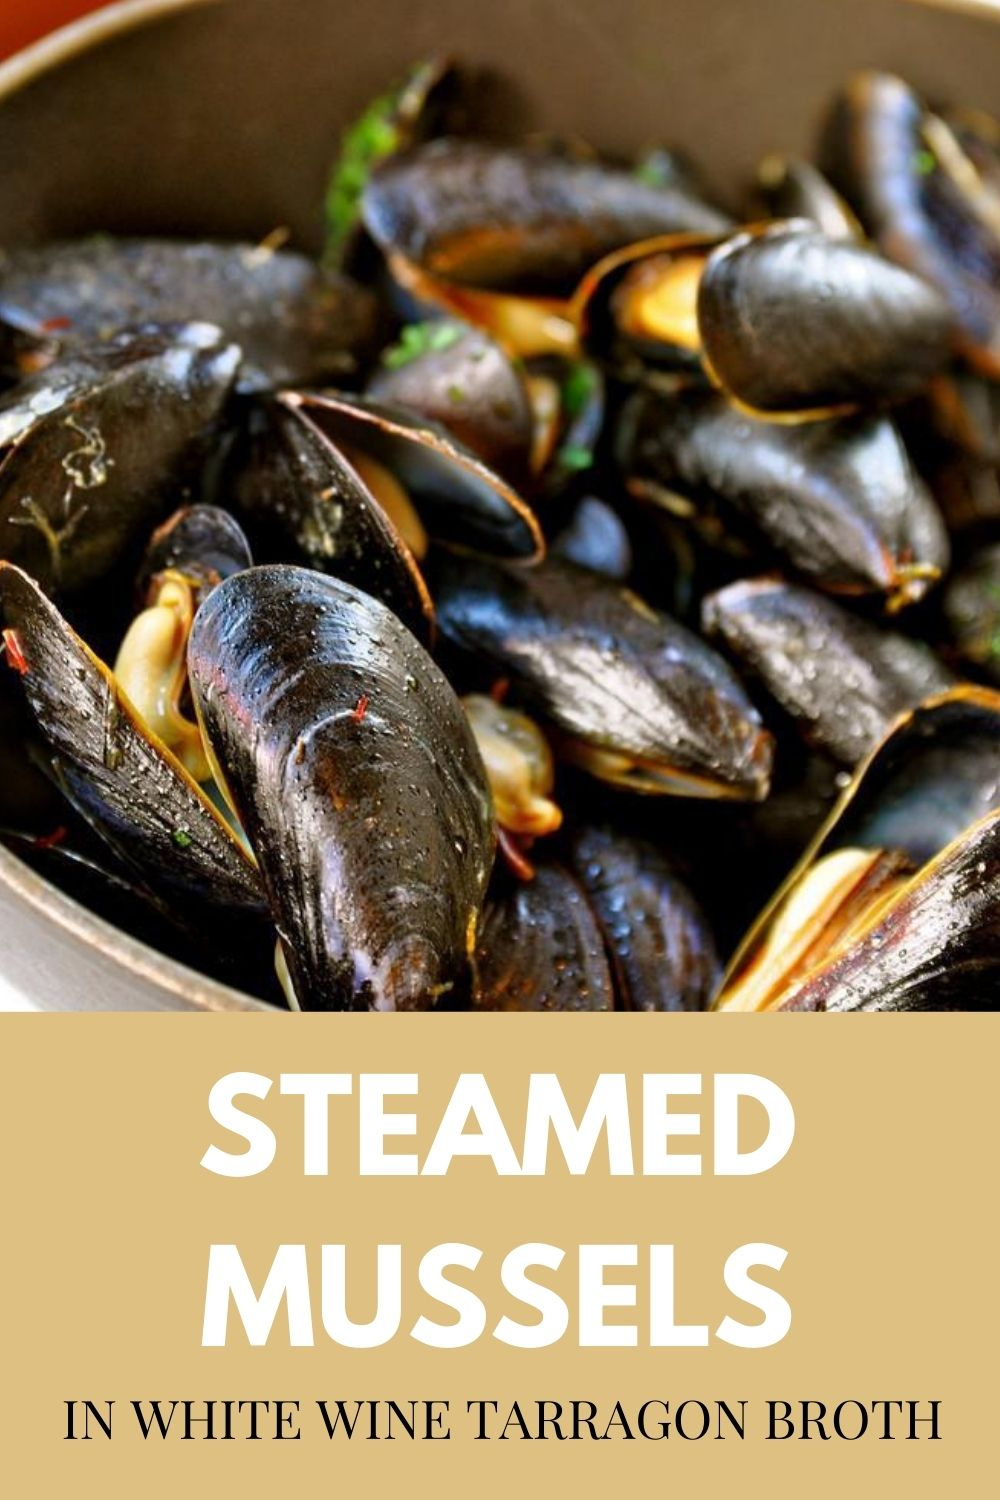 Steamed Mussels in White Wine Tarragon Broth Graphic